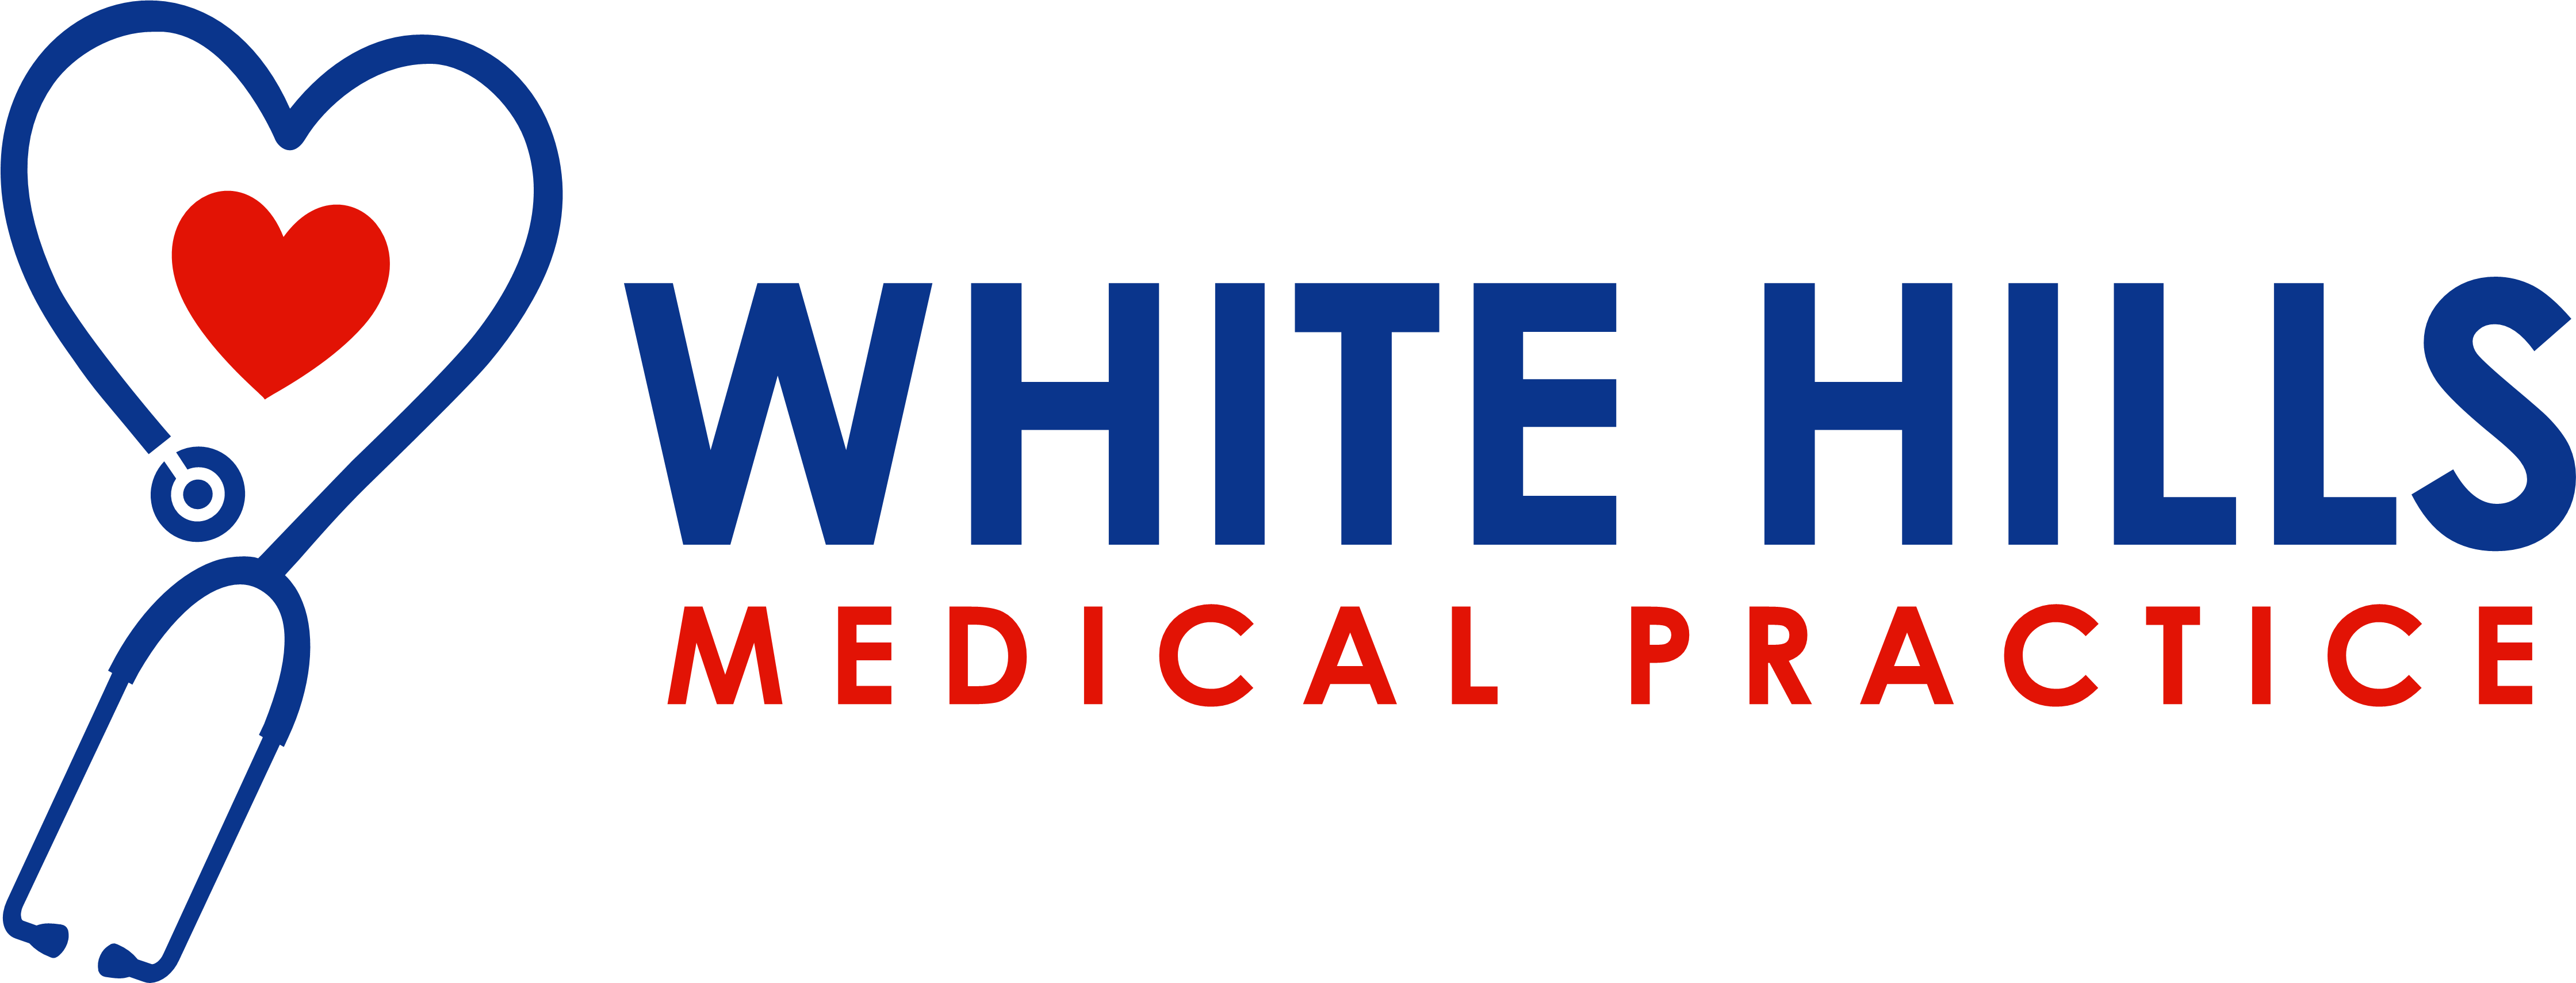 White Hills Medical Practice